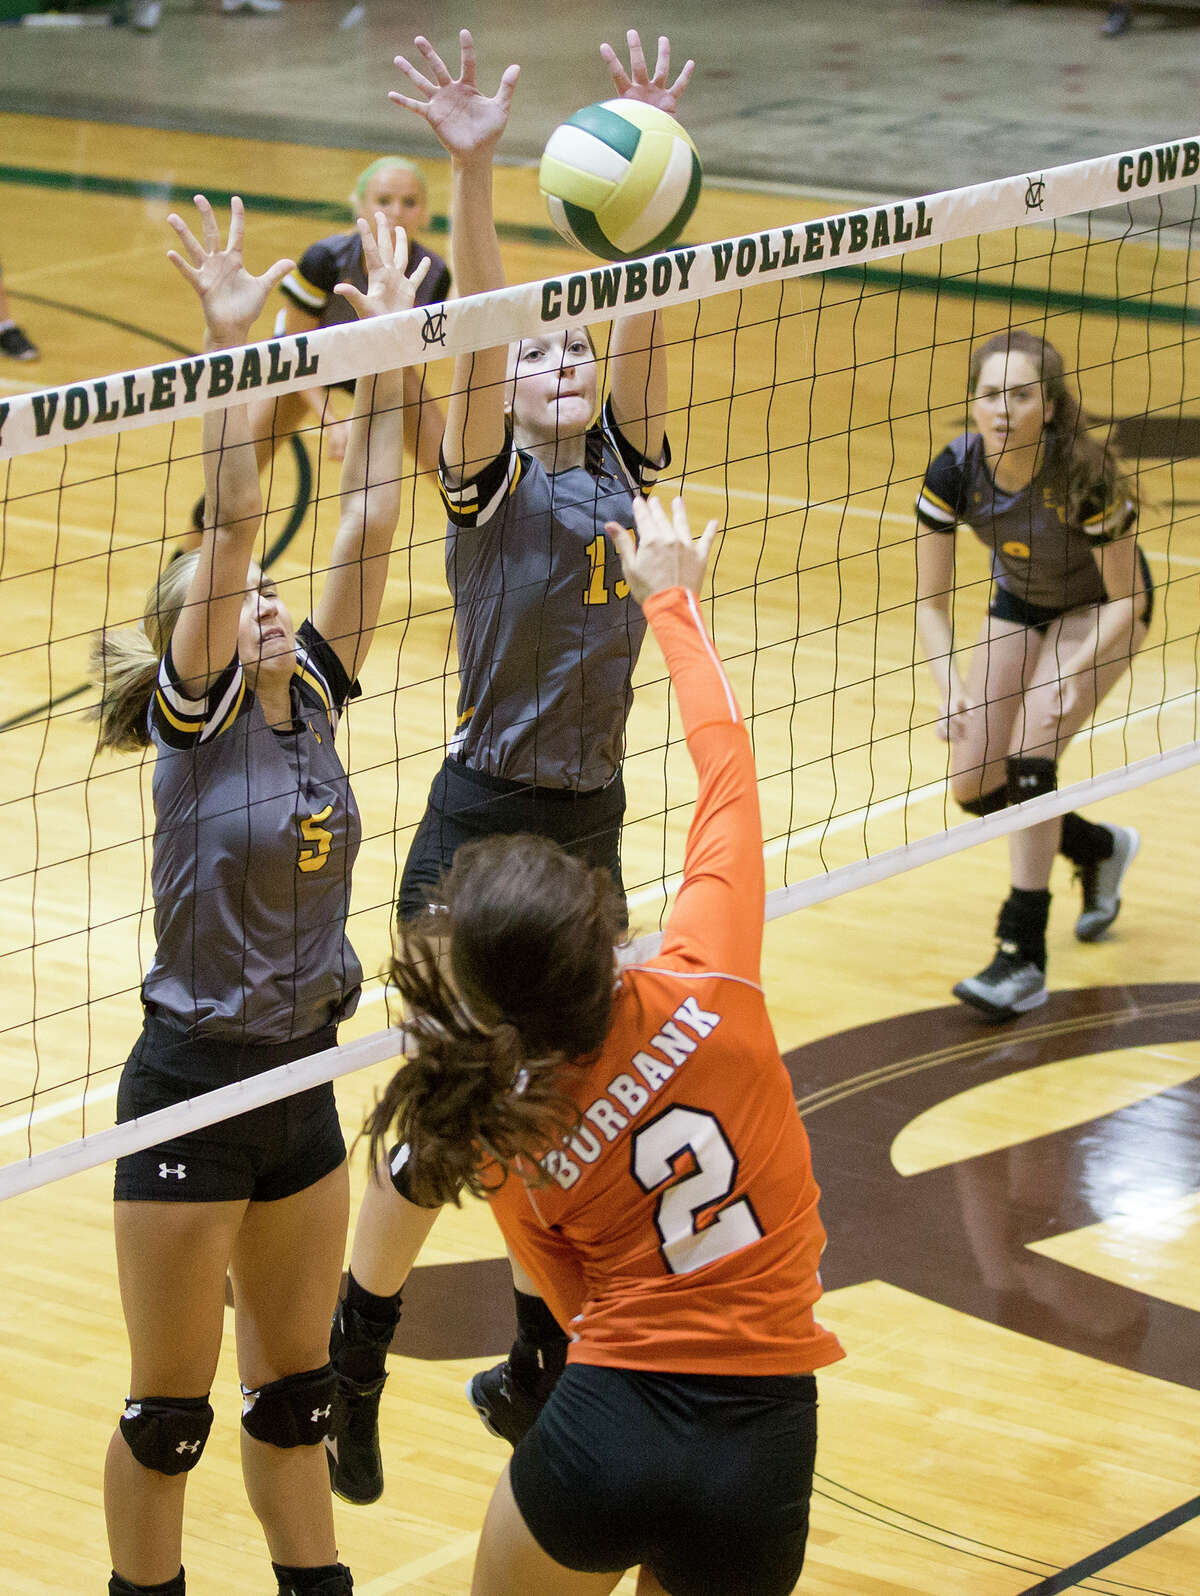 East Central's Madie Strzelczyk (left) and Sara Haycraft try to block a shot by Burbank's Pearl Alvear during their match at McCollum in the 2016 Harlandale ISD Volleyball tournament on Friday, Aug. 12, 2016. MARVIN PFEIFFER/ mpfeiffer@express-news.net